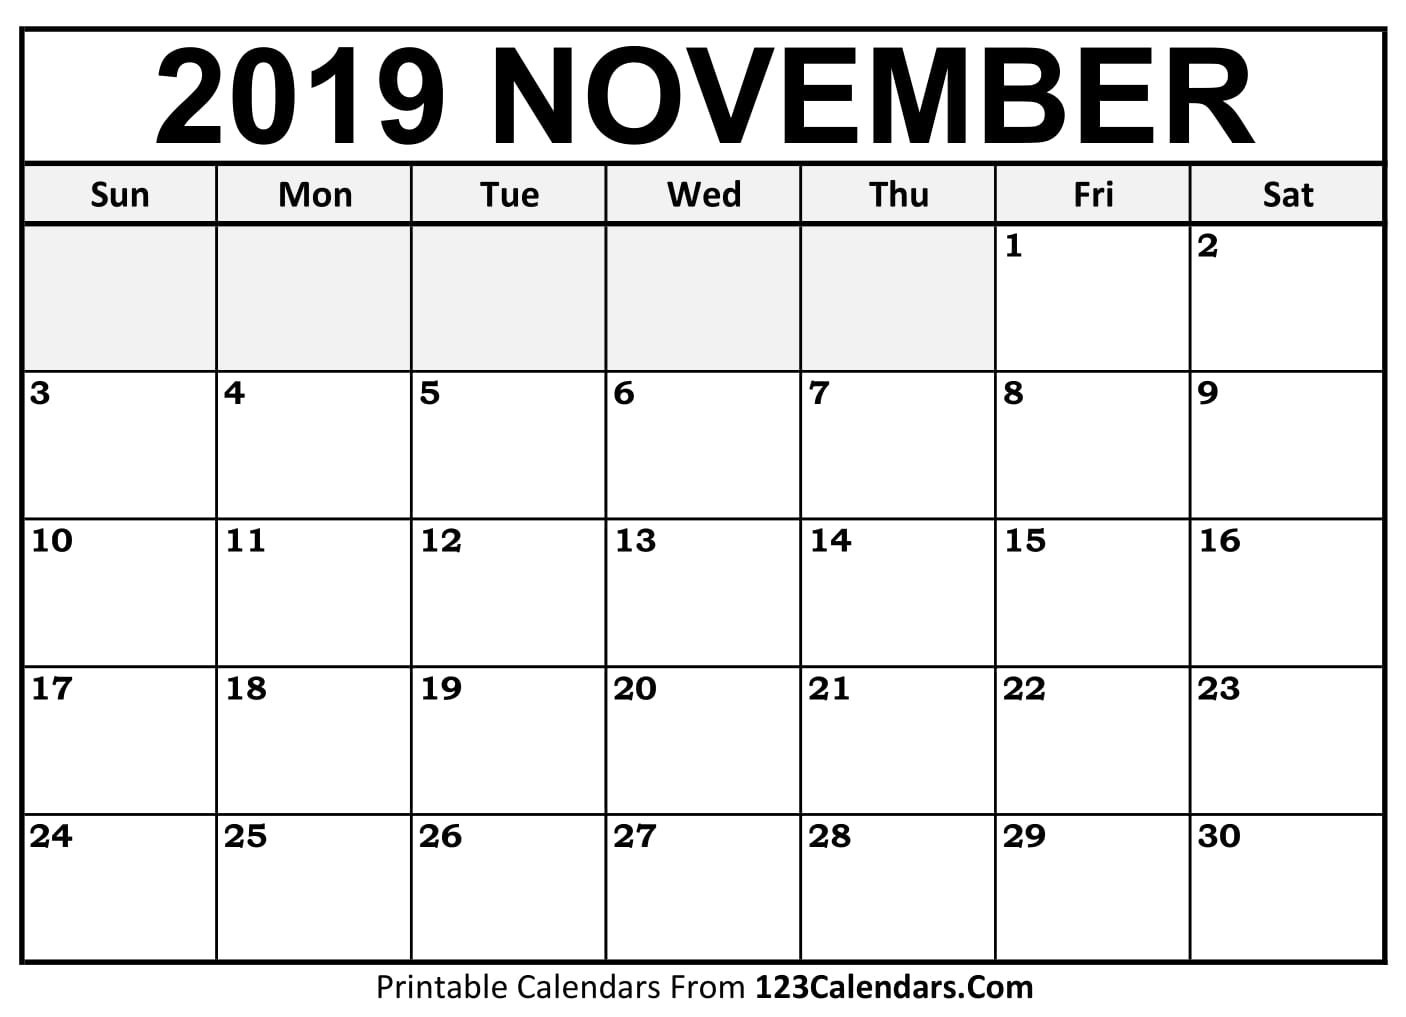 photo relating to Printable November Calendars titled November 2019 Printable Calendar